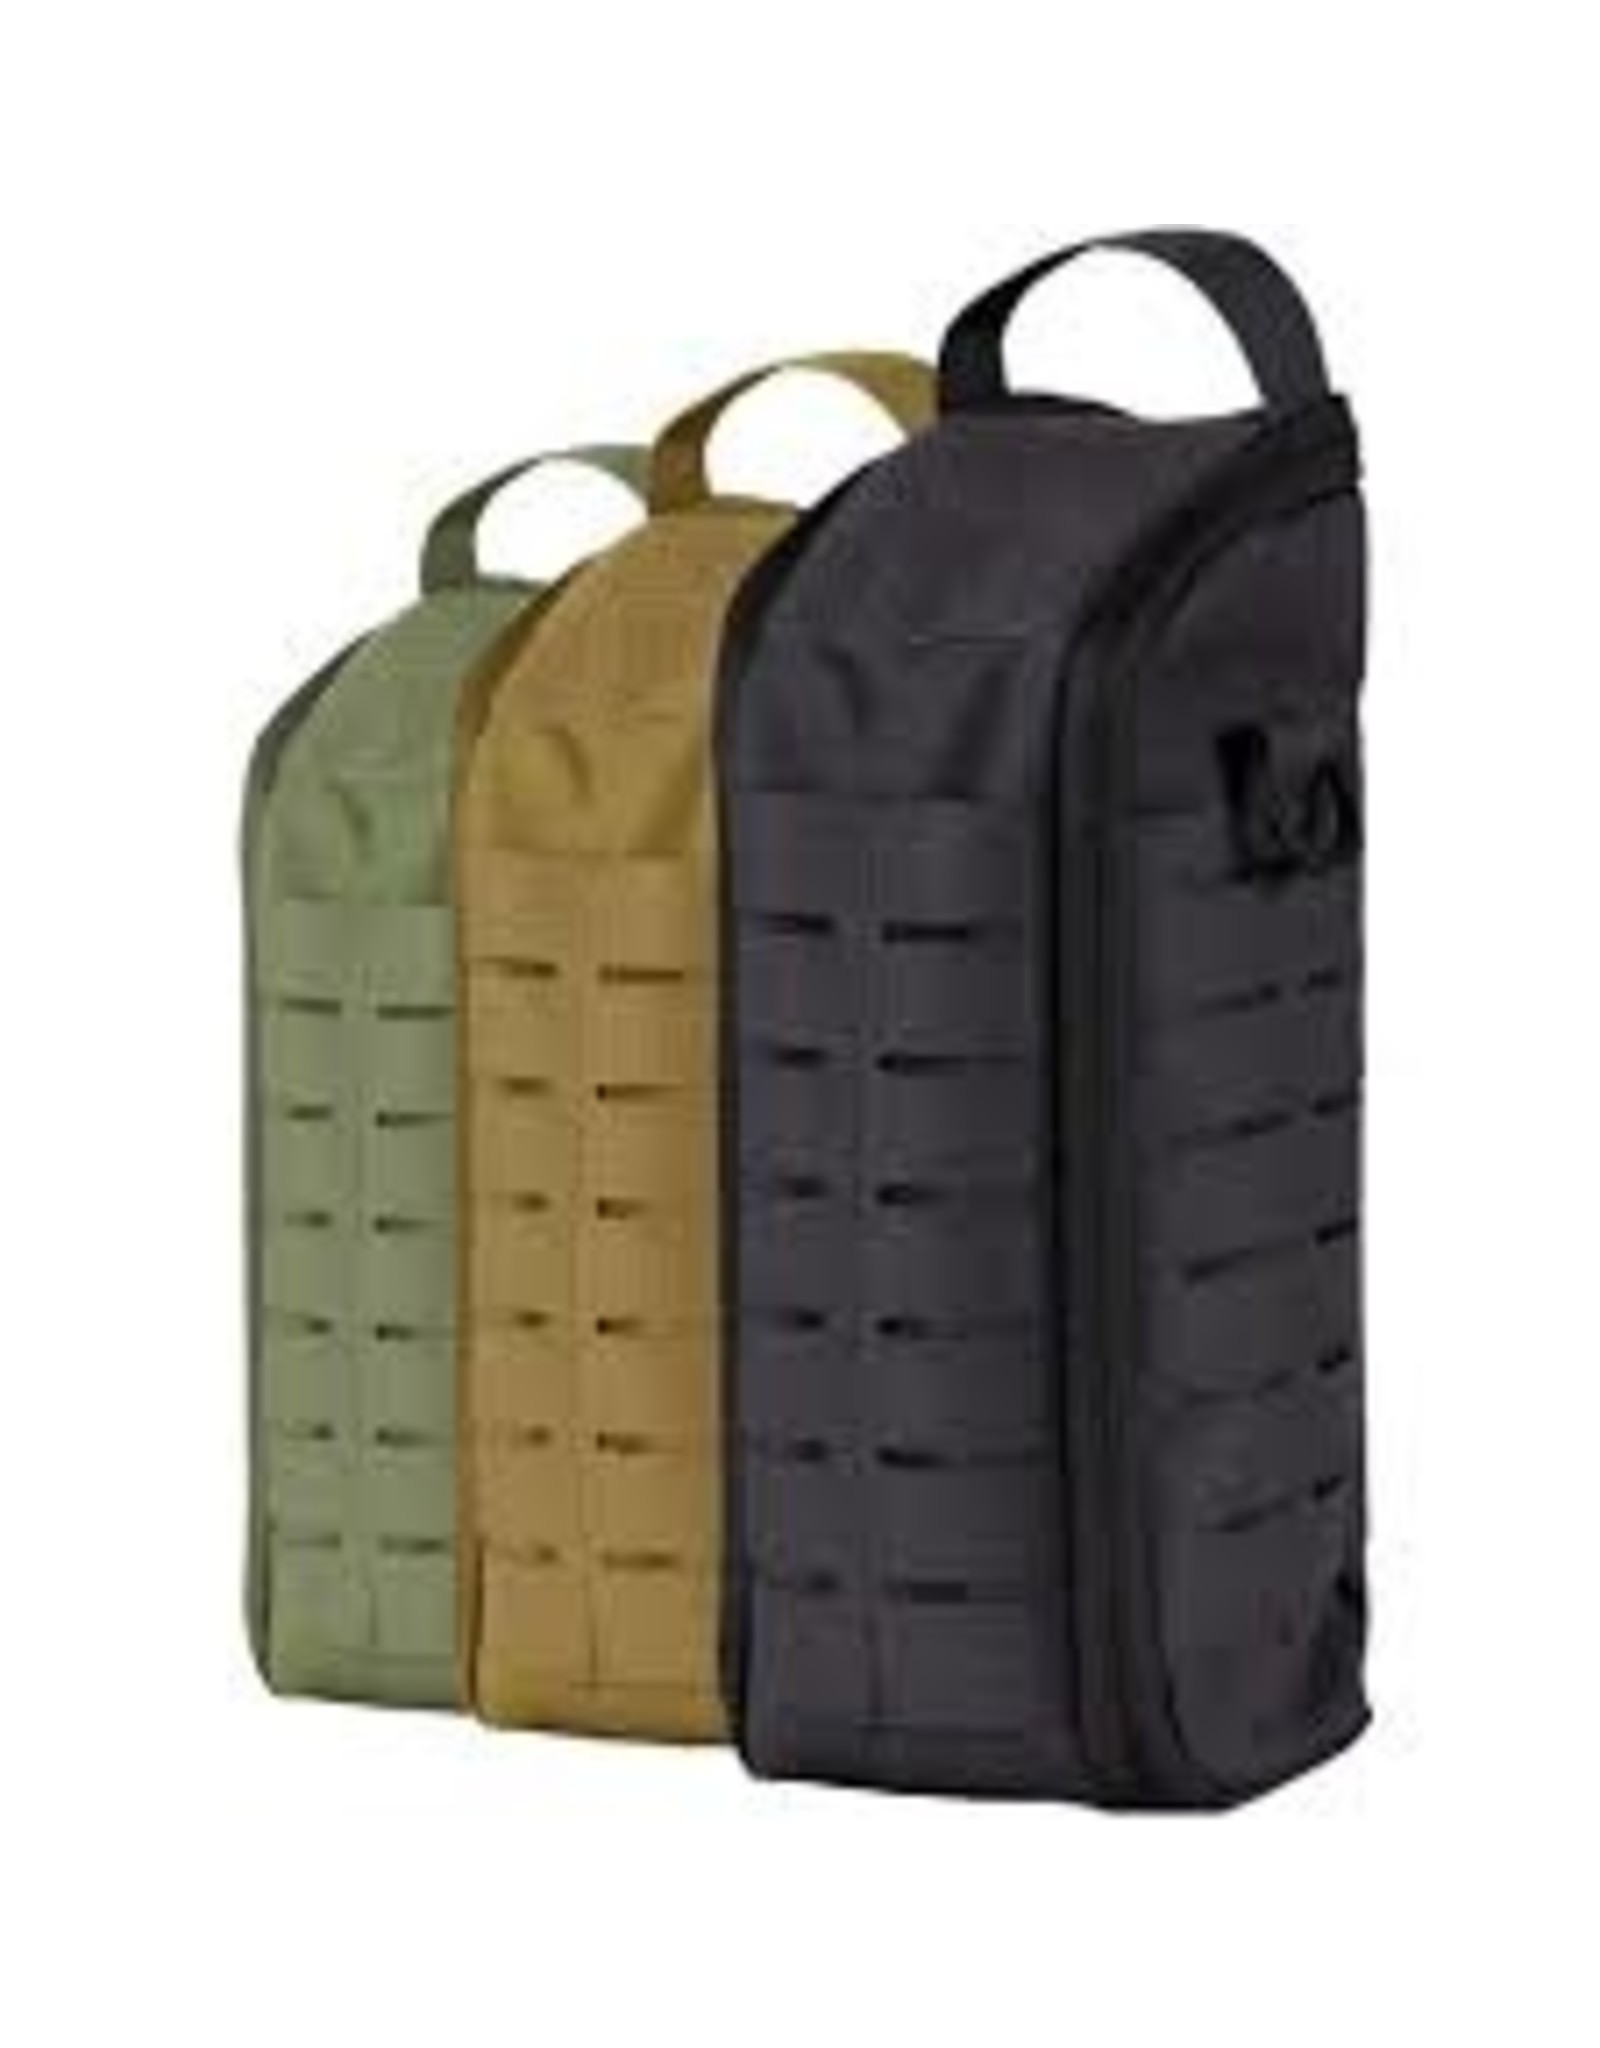 CONDOR TACTICAL FIELD POUCH